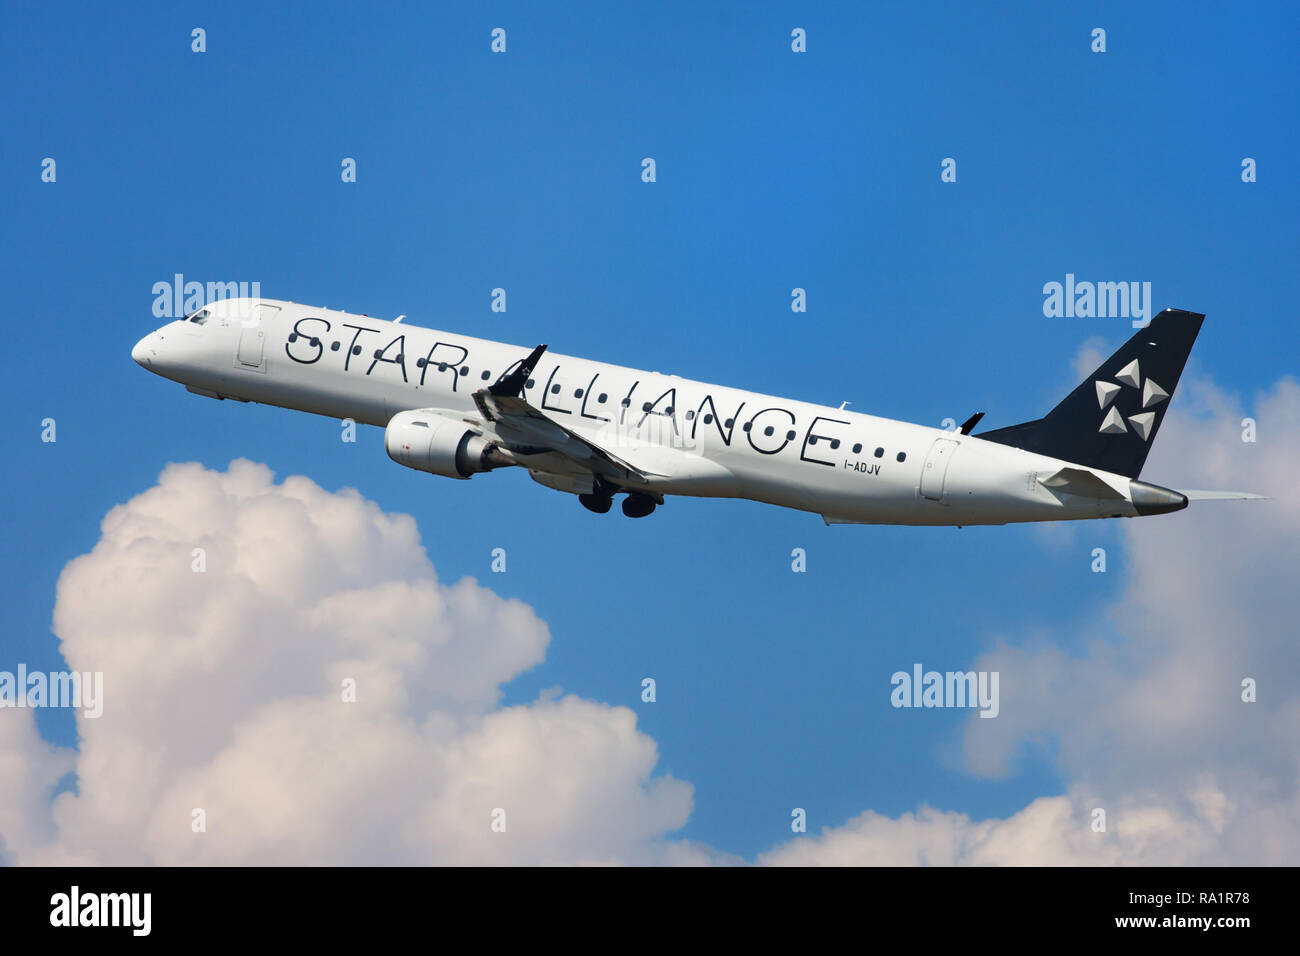 Barcelona, Spain - September 16, 2018: Air Dolomiti Embraer ERJ-195LR with Star Alliance Livery taking off from El Prat Airport in Barcelona, Spain. - Stock Image